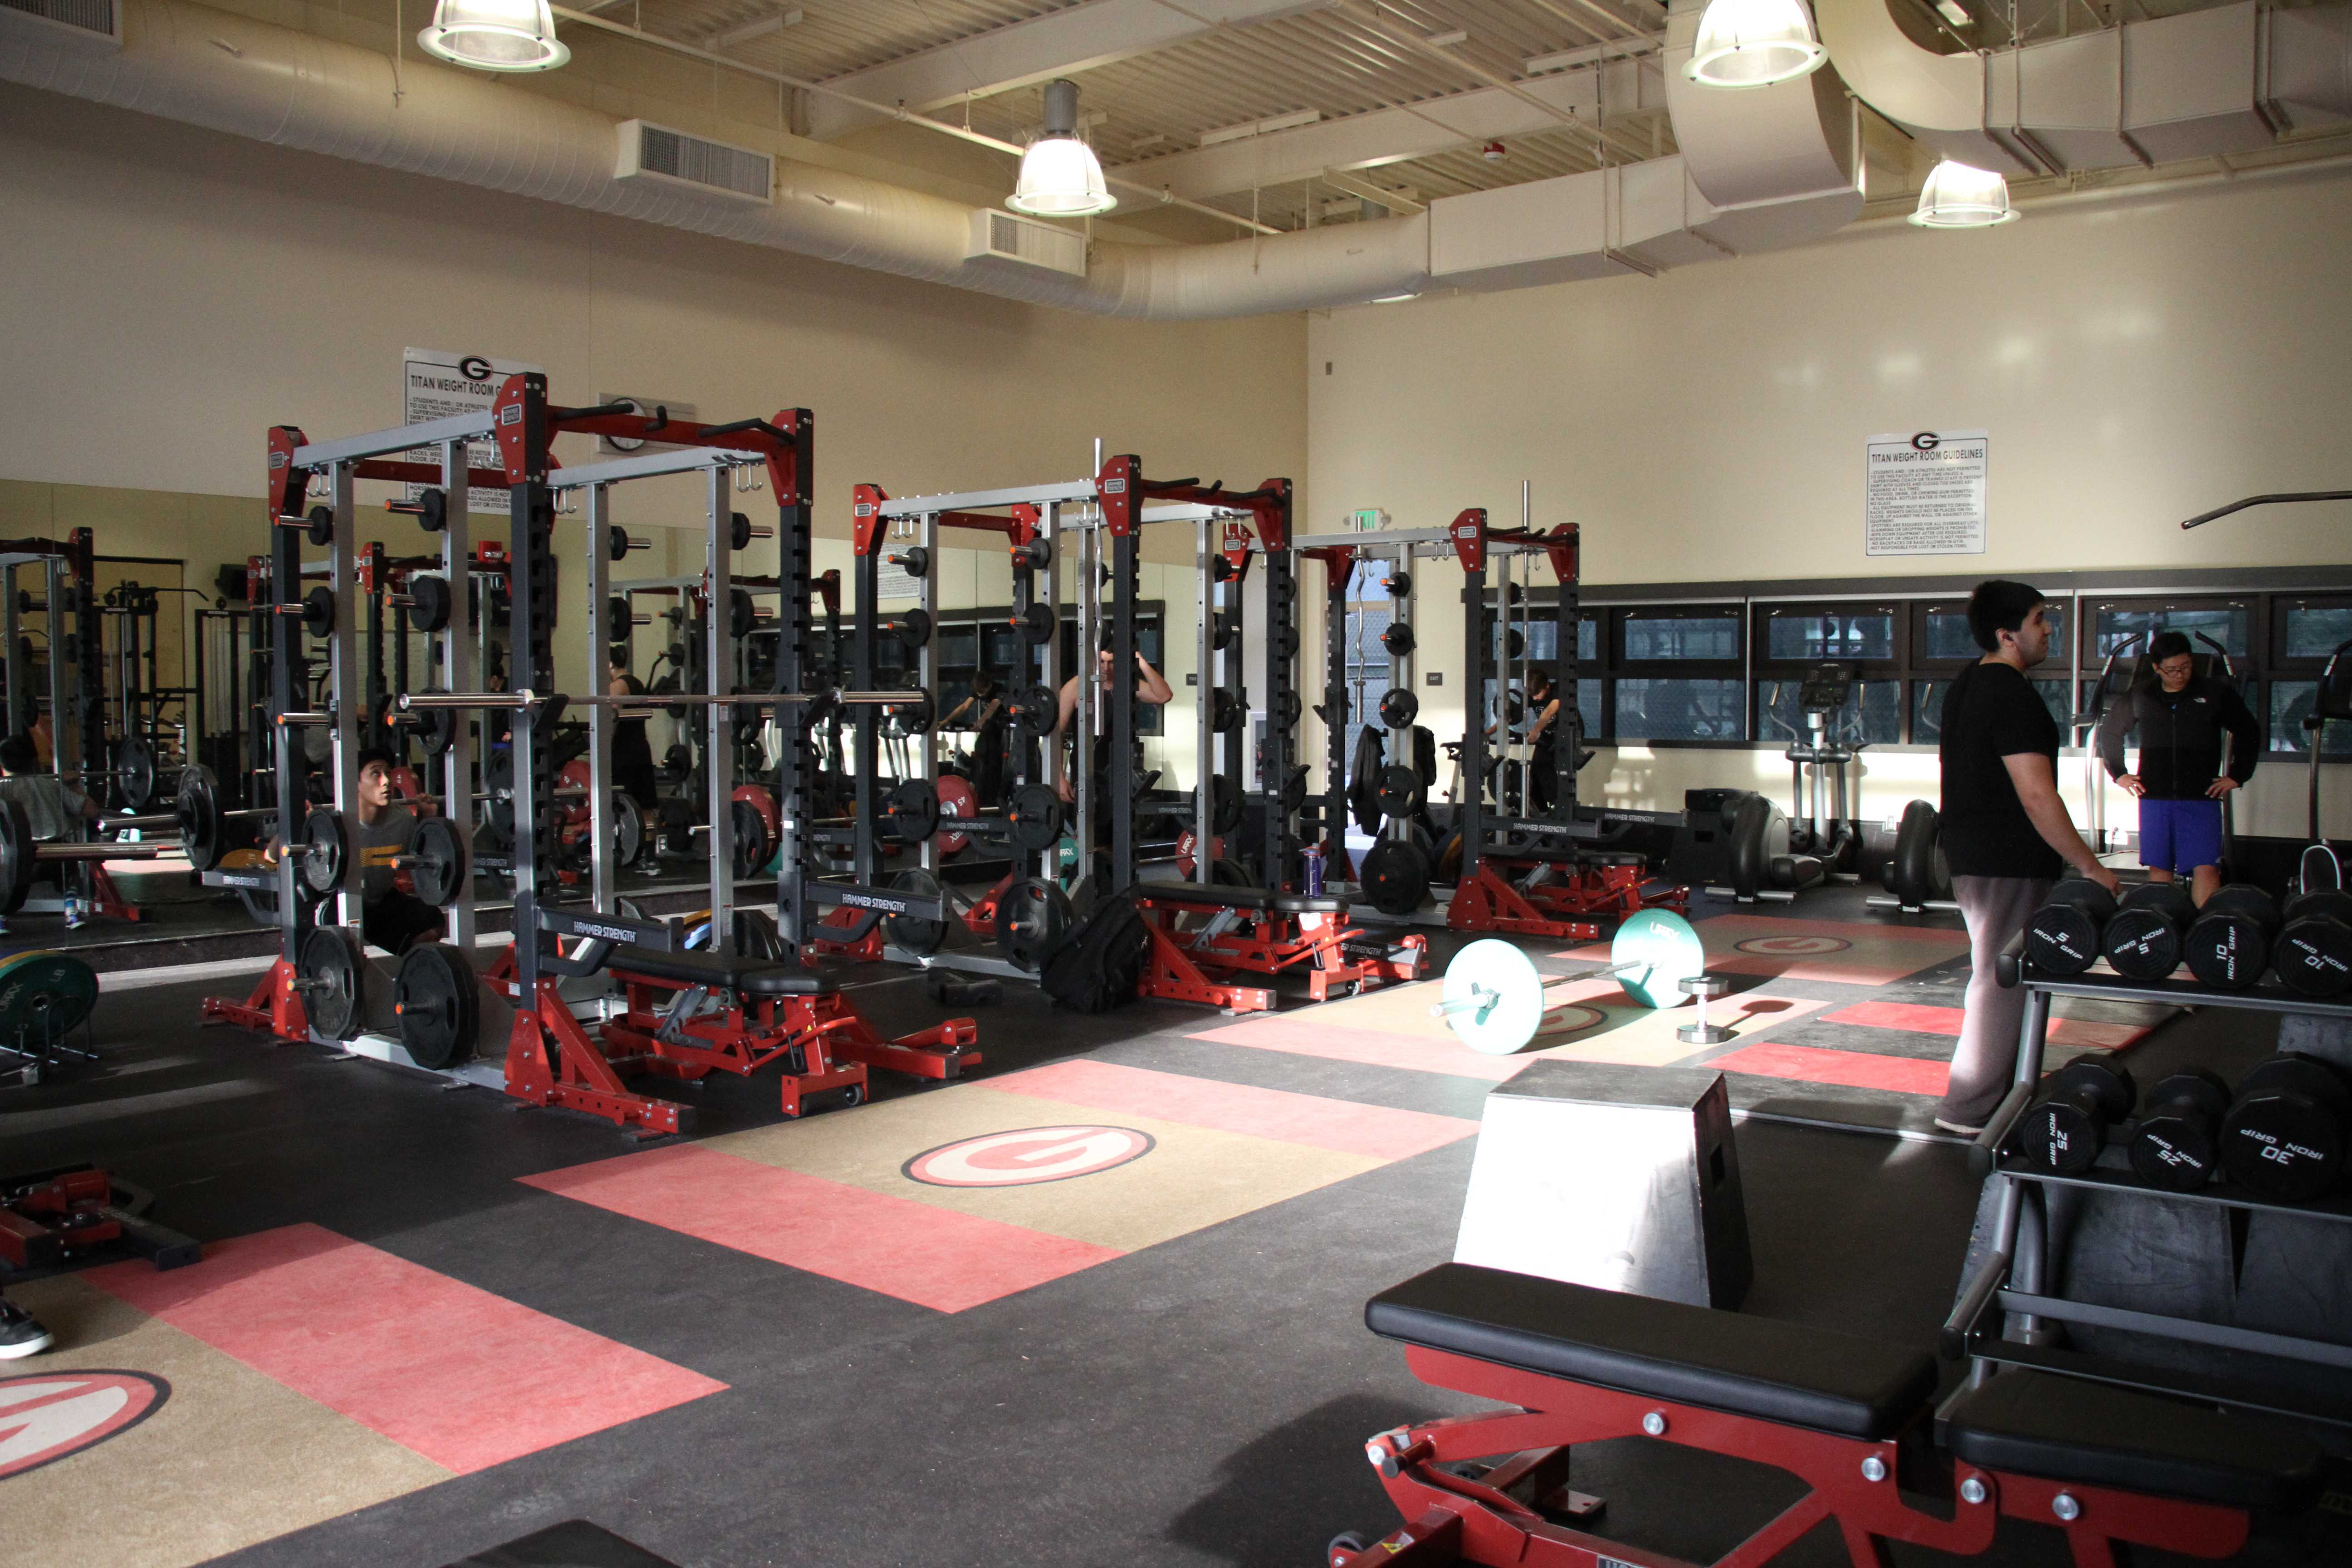 Fitness center available after school for student use